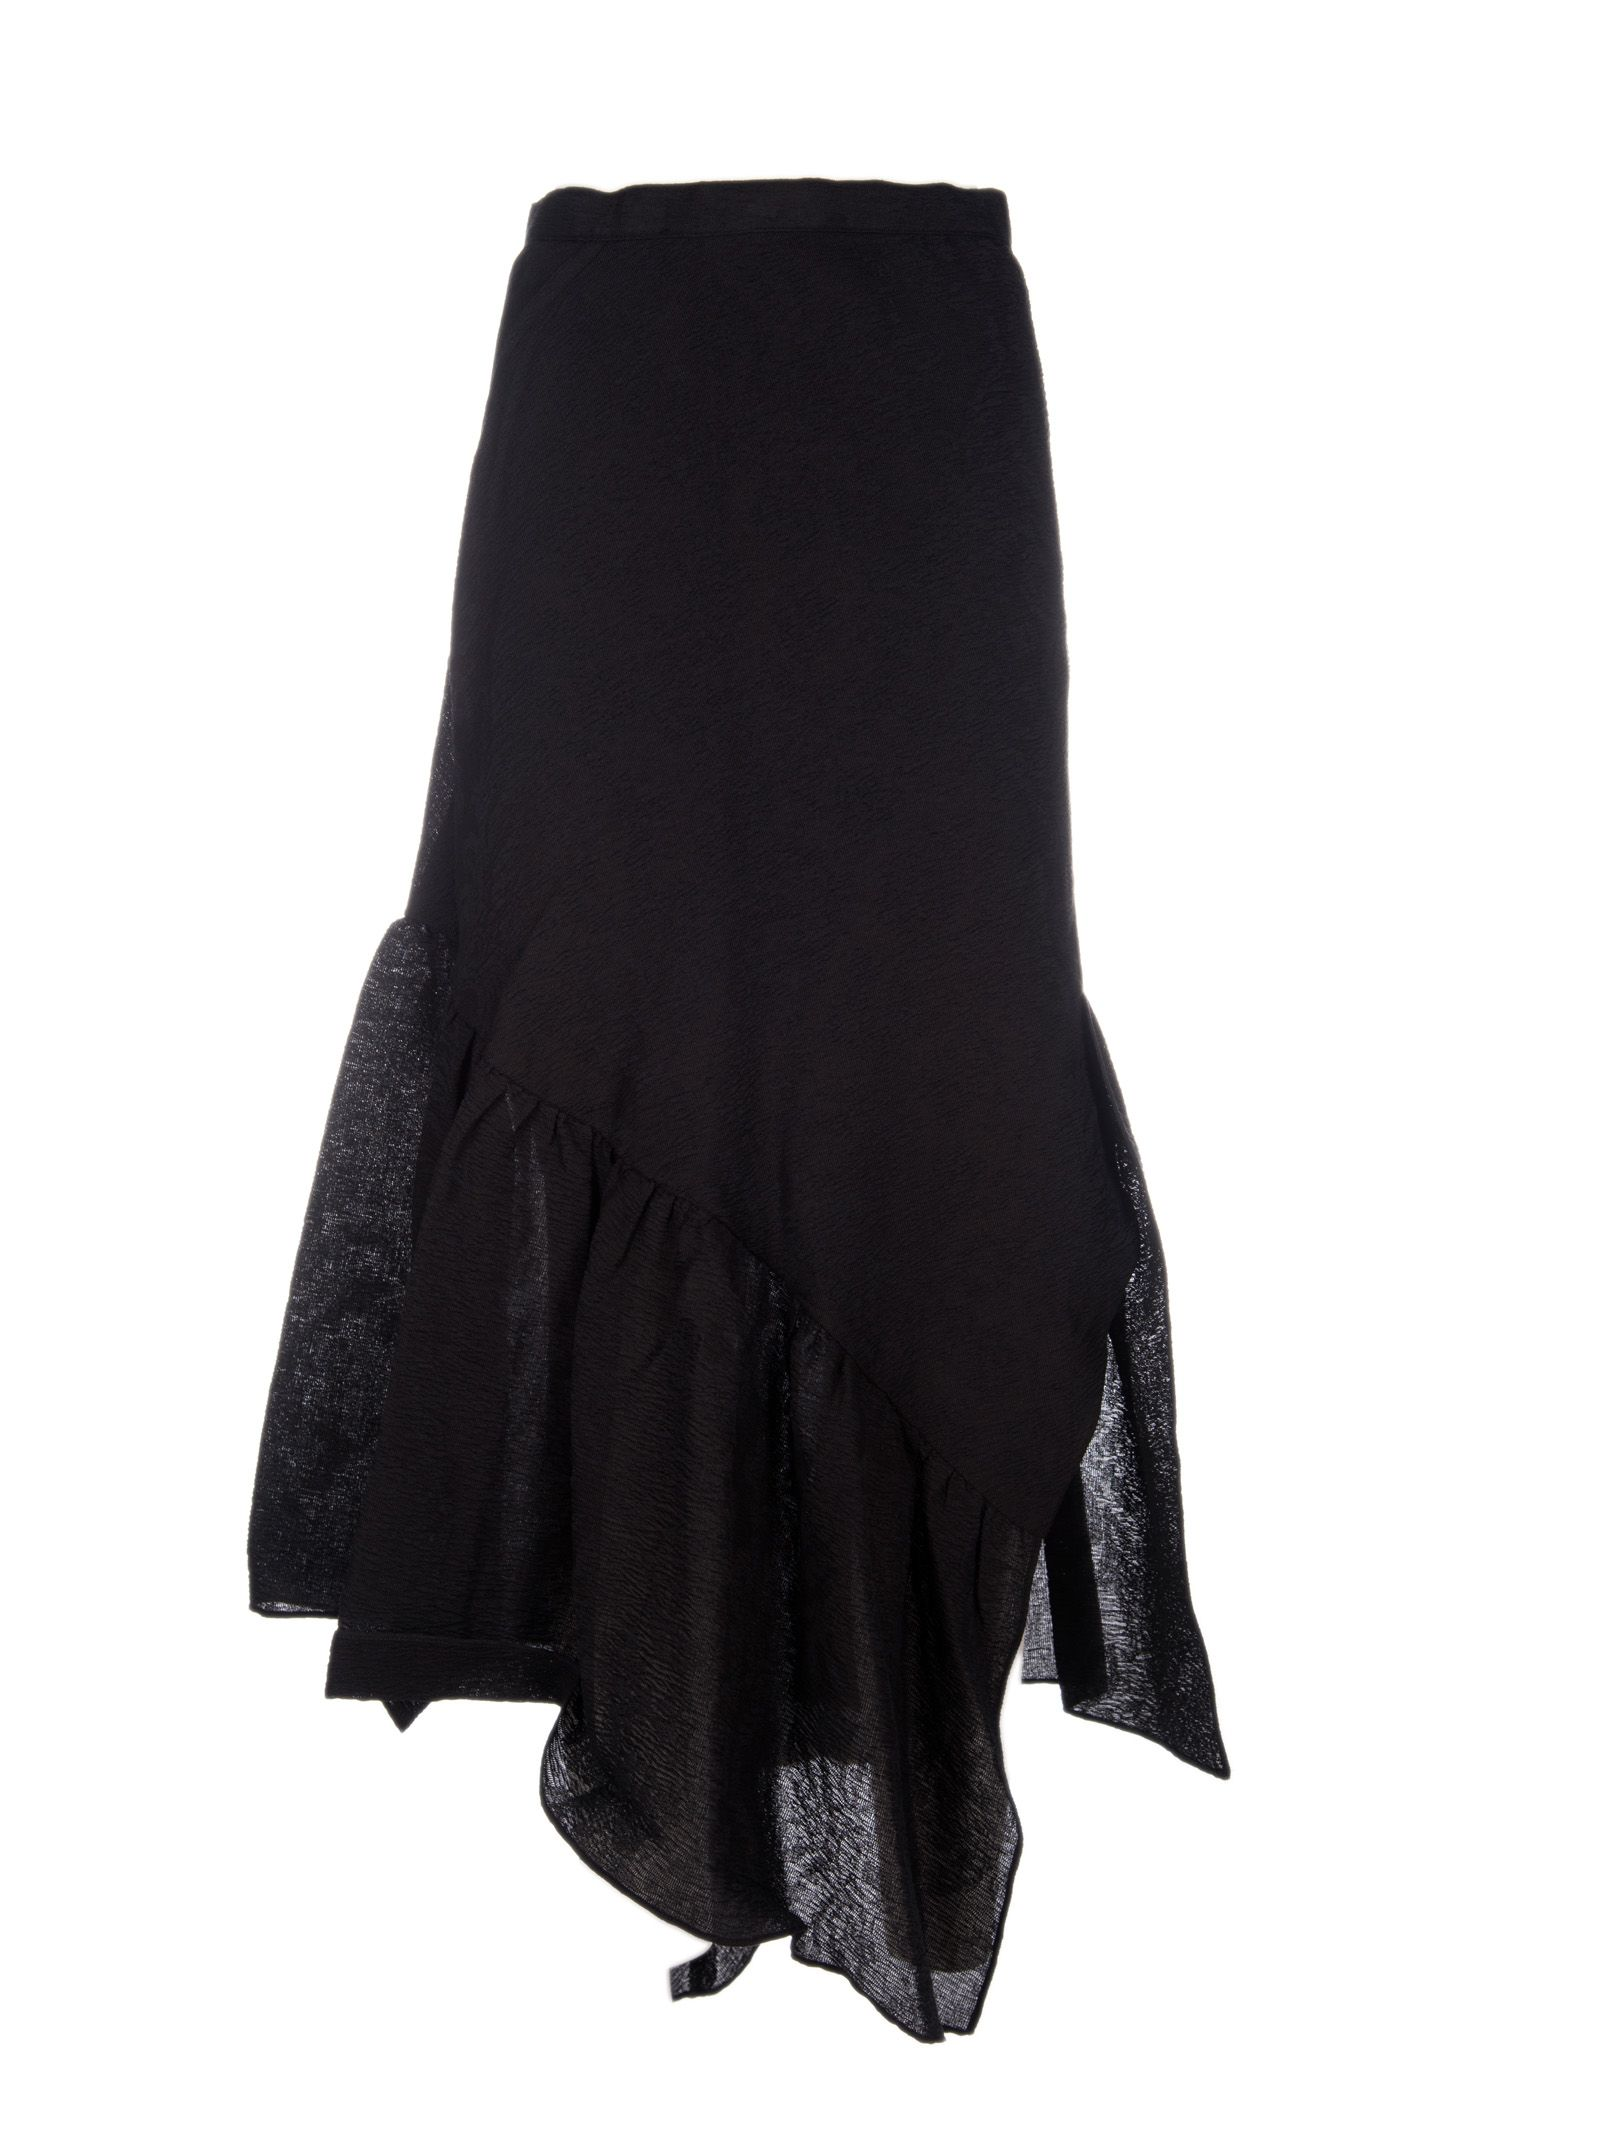 3.1 Phillip Lim Ruffled Midi Skirt